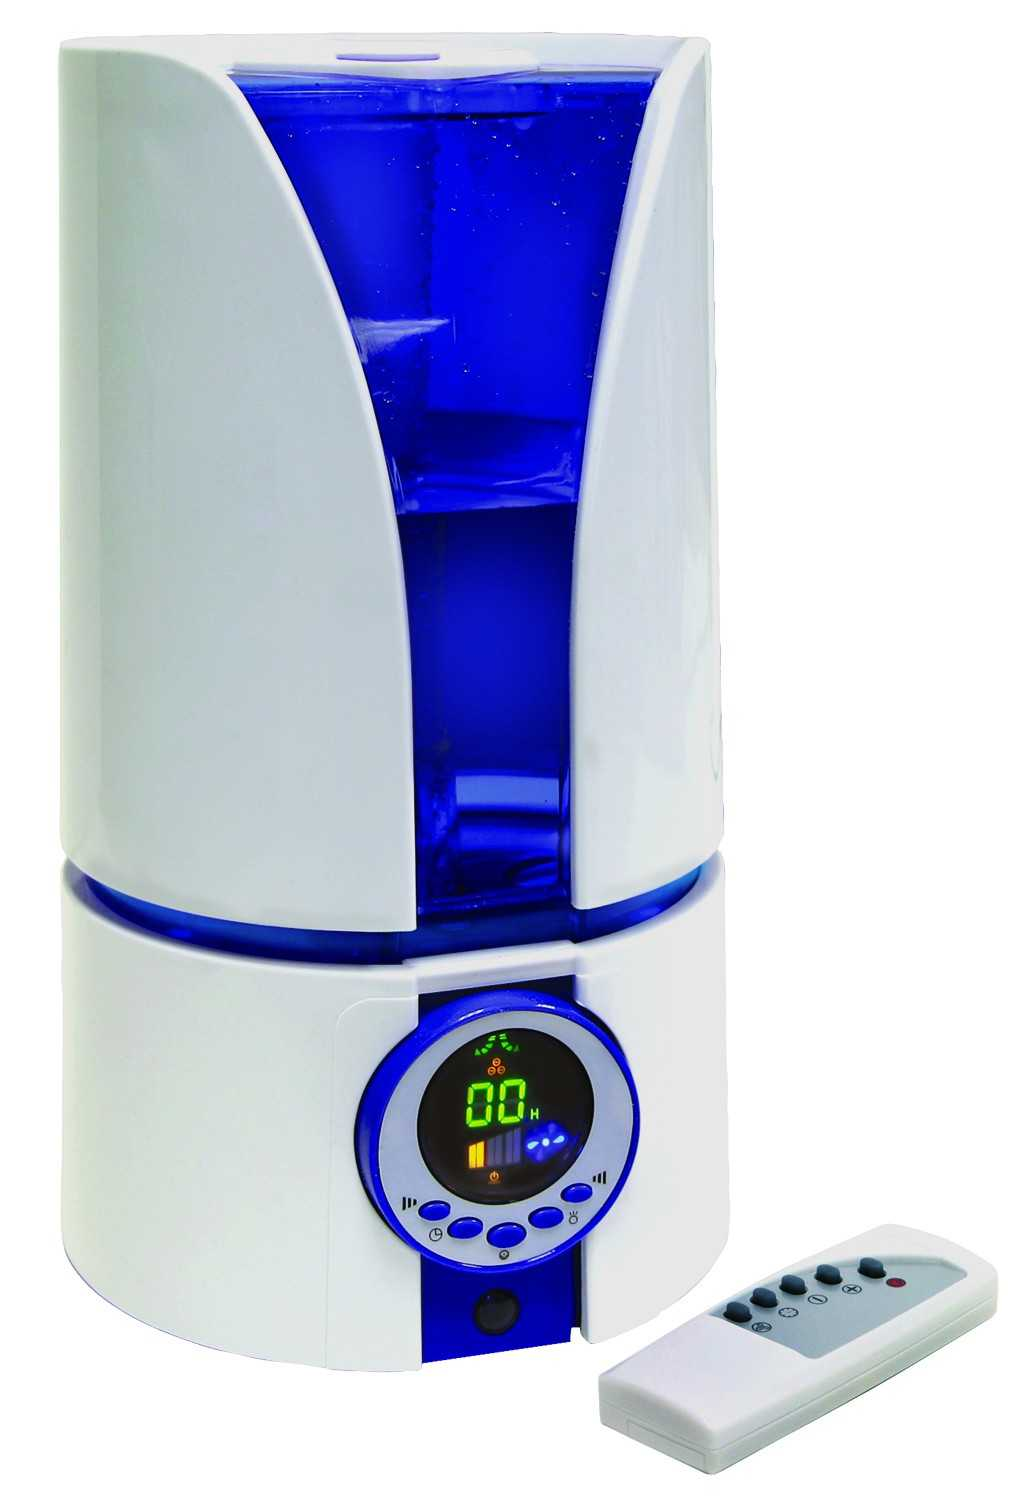 Comfort Zone Czhd81 Ultrasonic Cool Mist Humidifier With